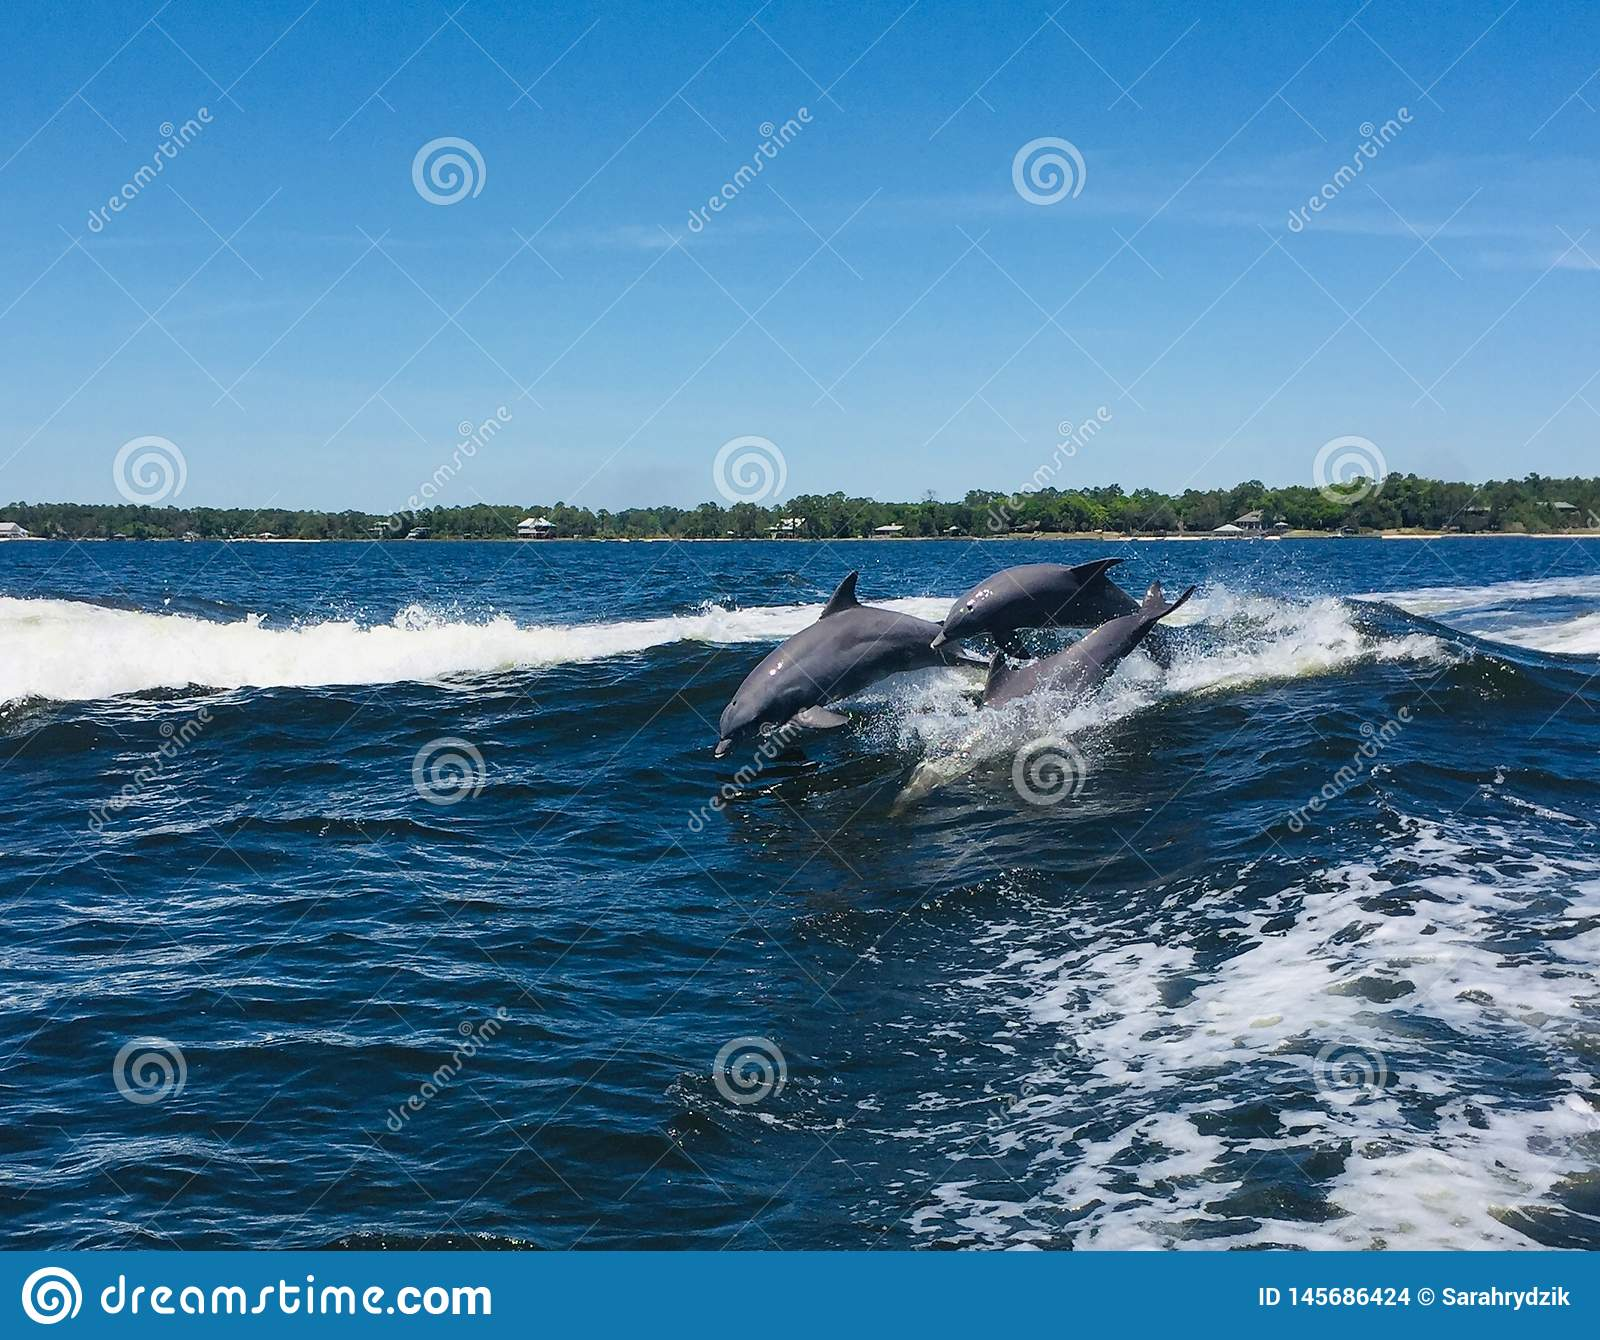 Dolphins having fun in the waves